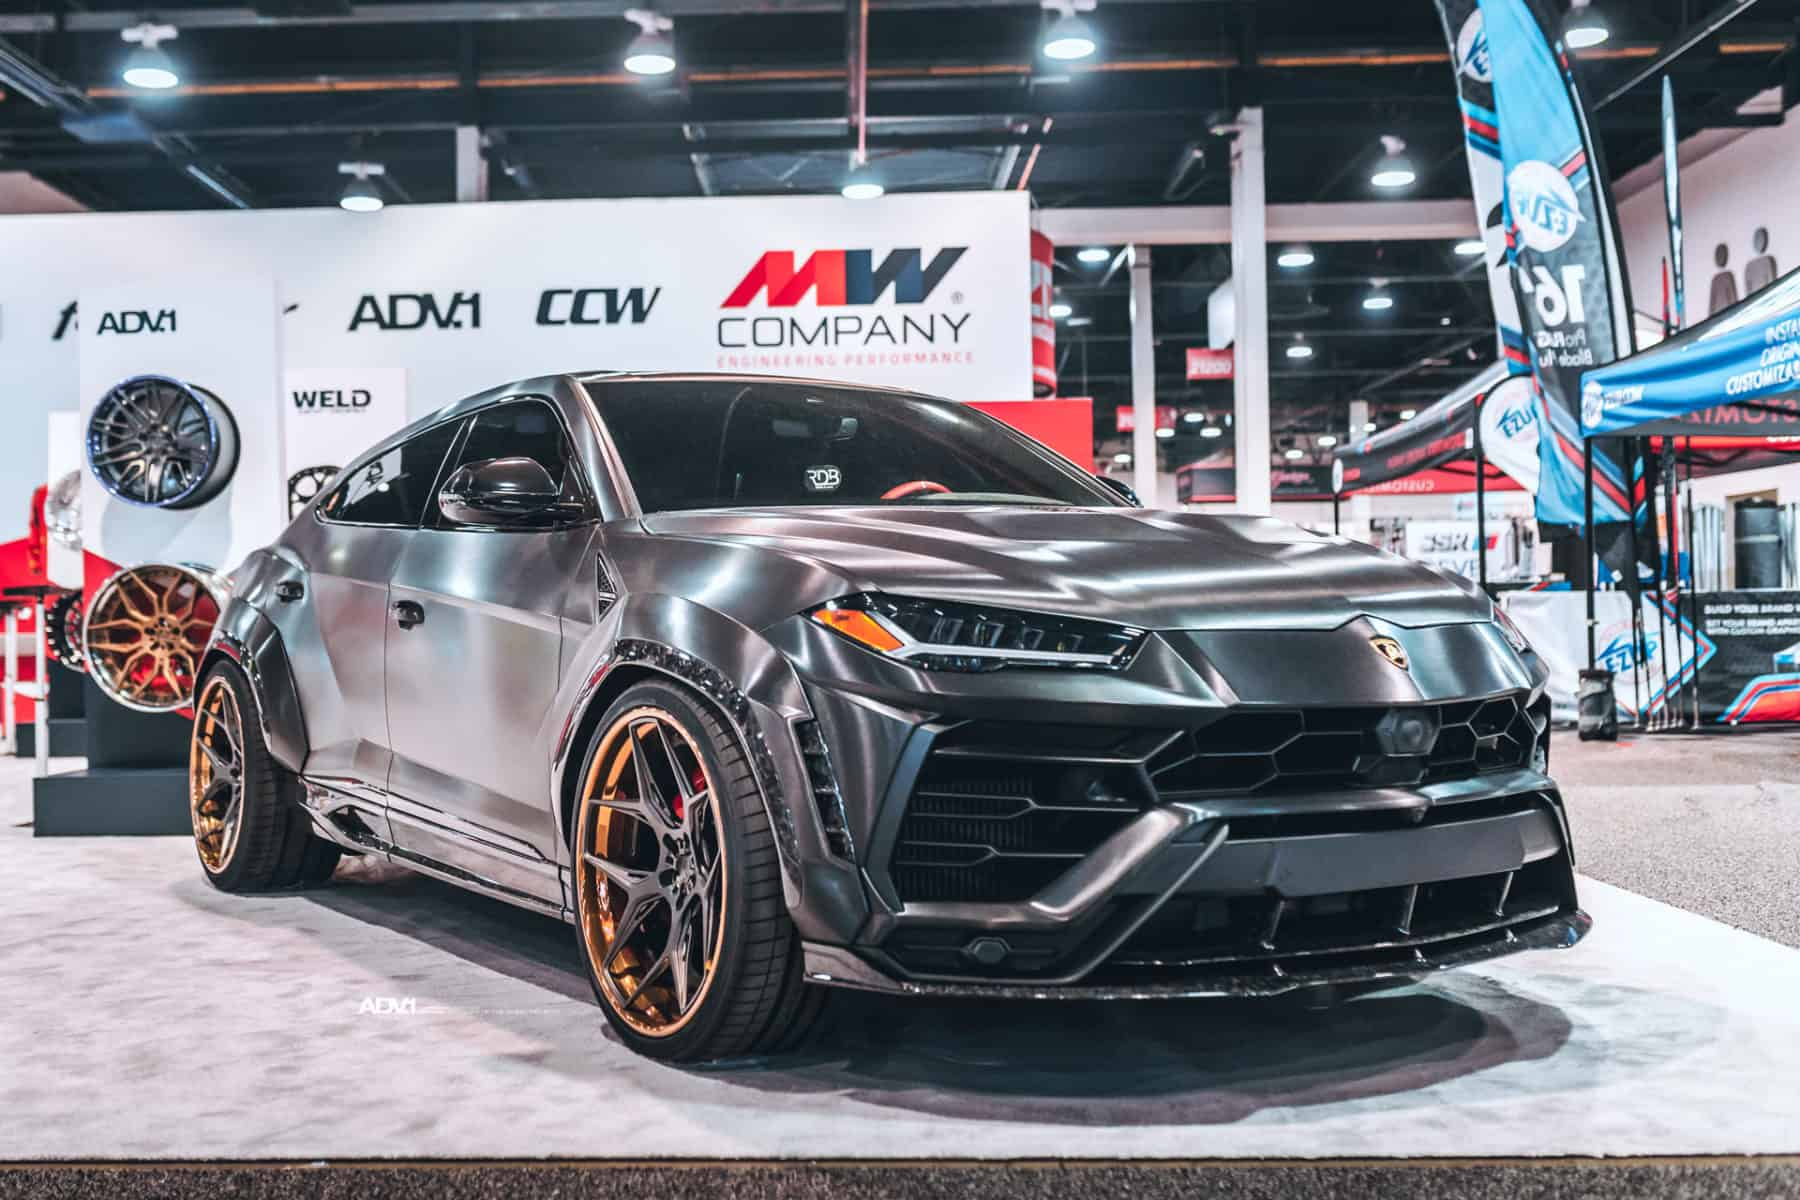 Lamborghini Urus 1016 Industries Widebody & ADV.1 Wheels